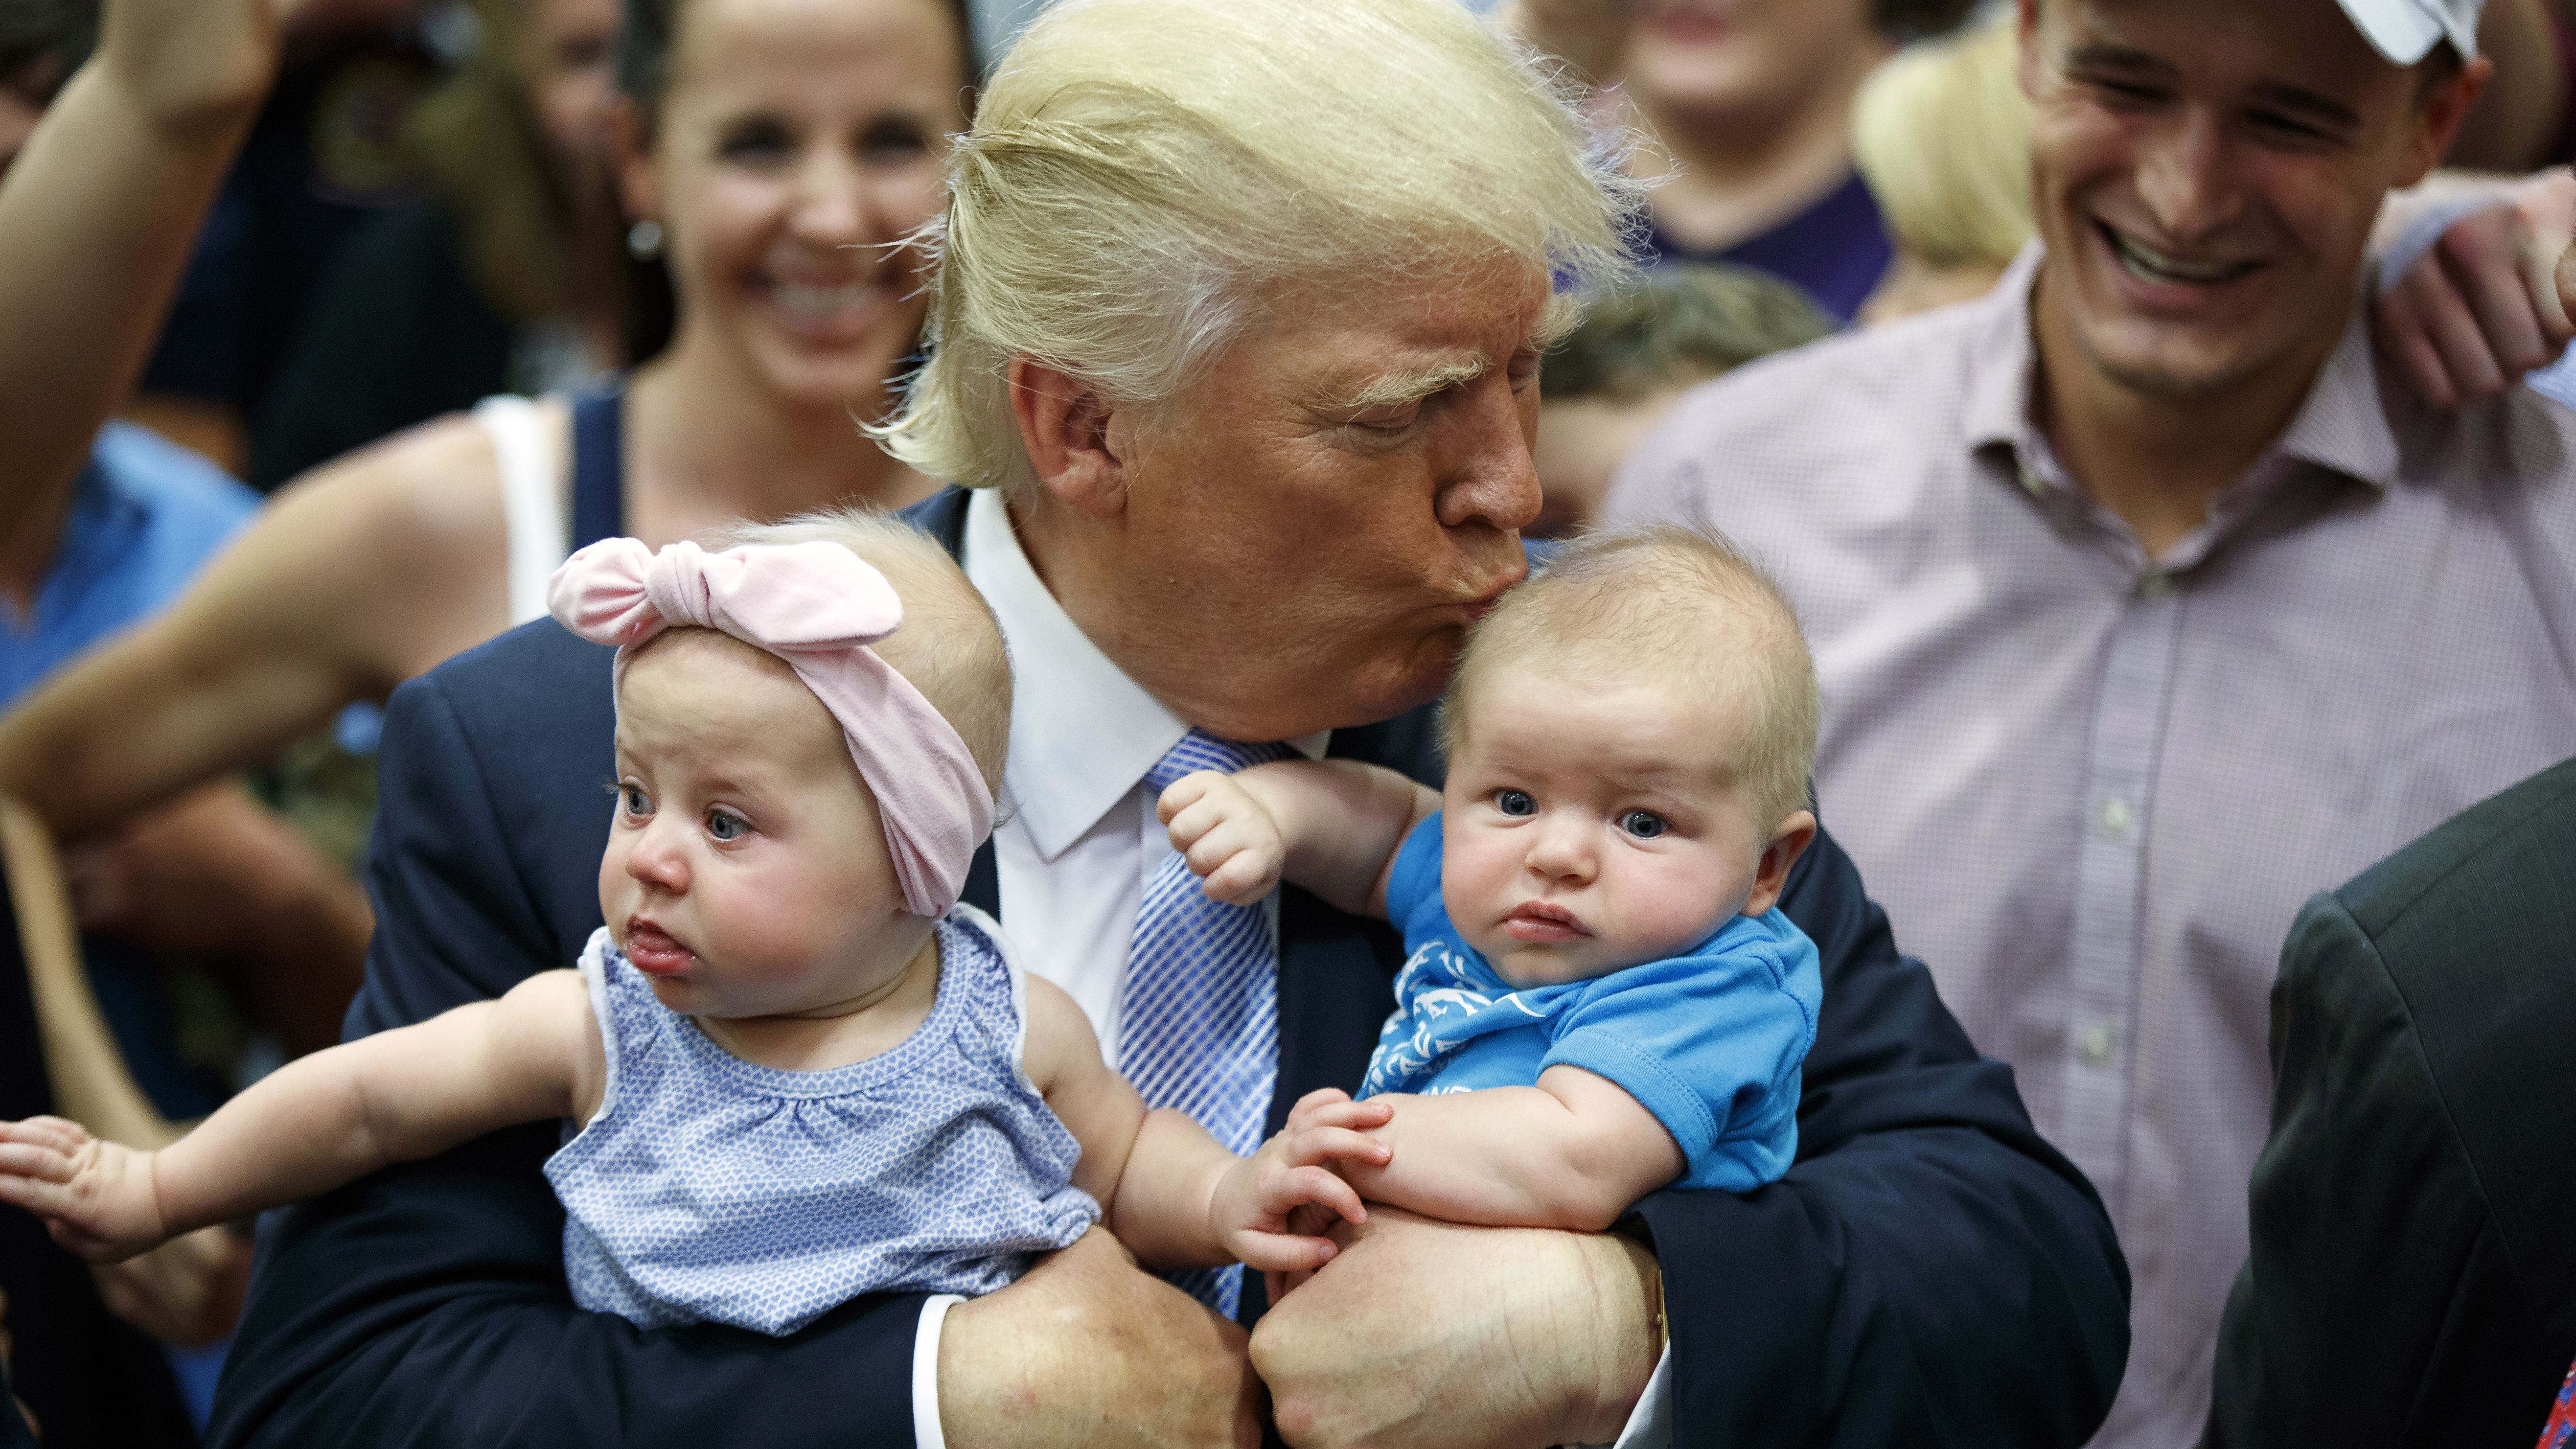 trump-kisses-baby.jpg?quality=75&strip=a